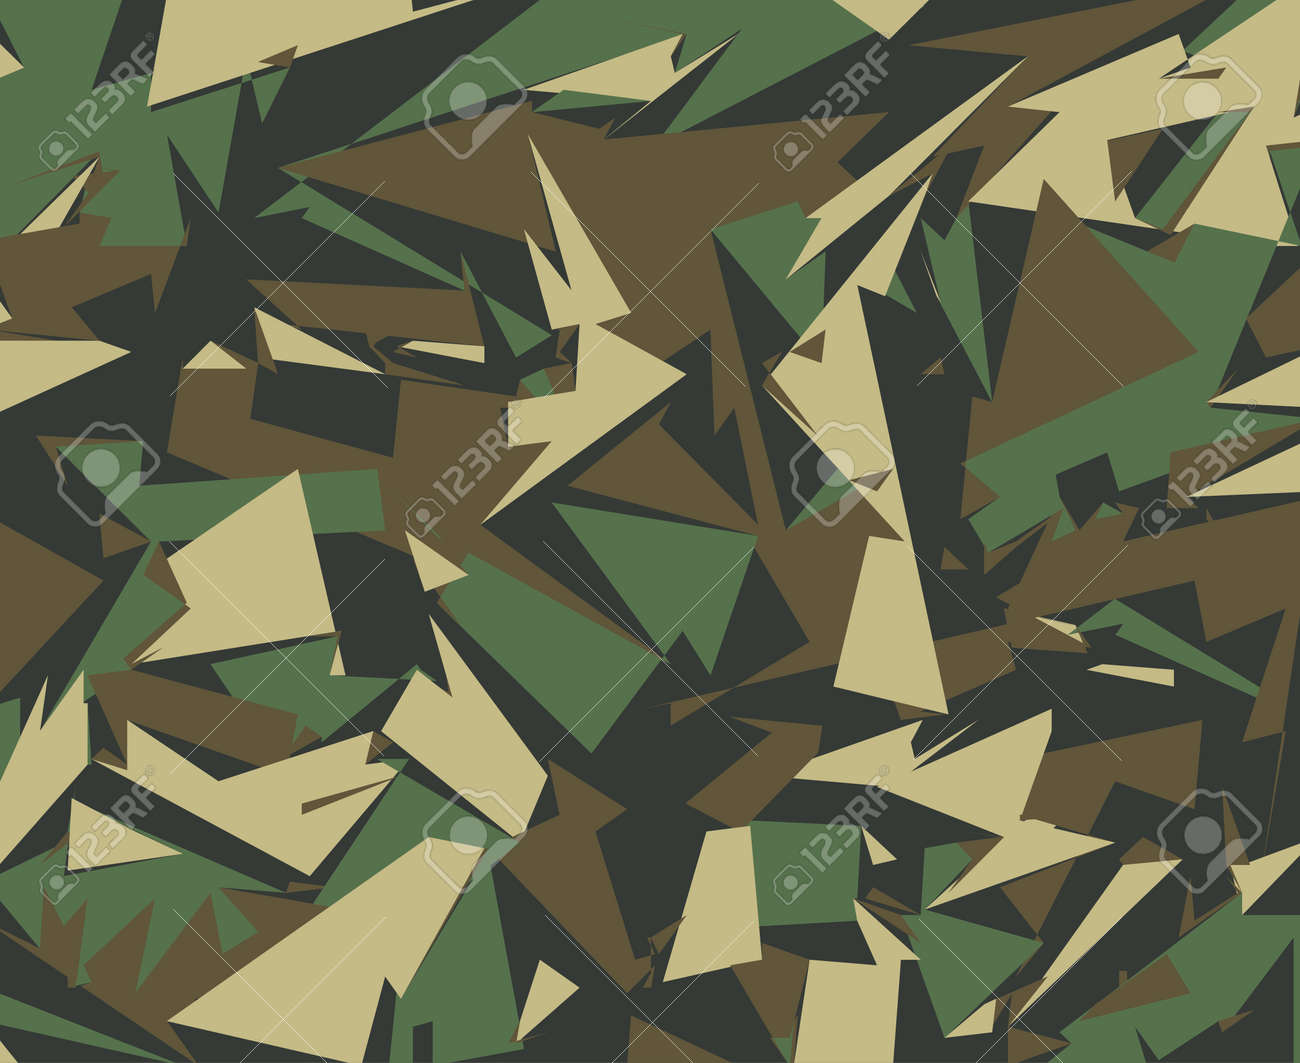 abstract vector military camouflage background camo pattern